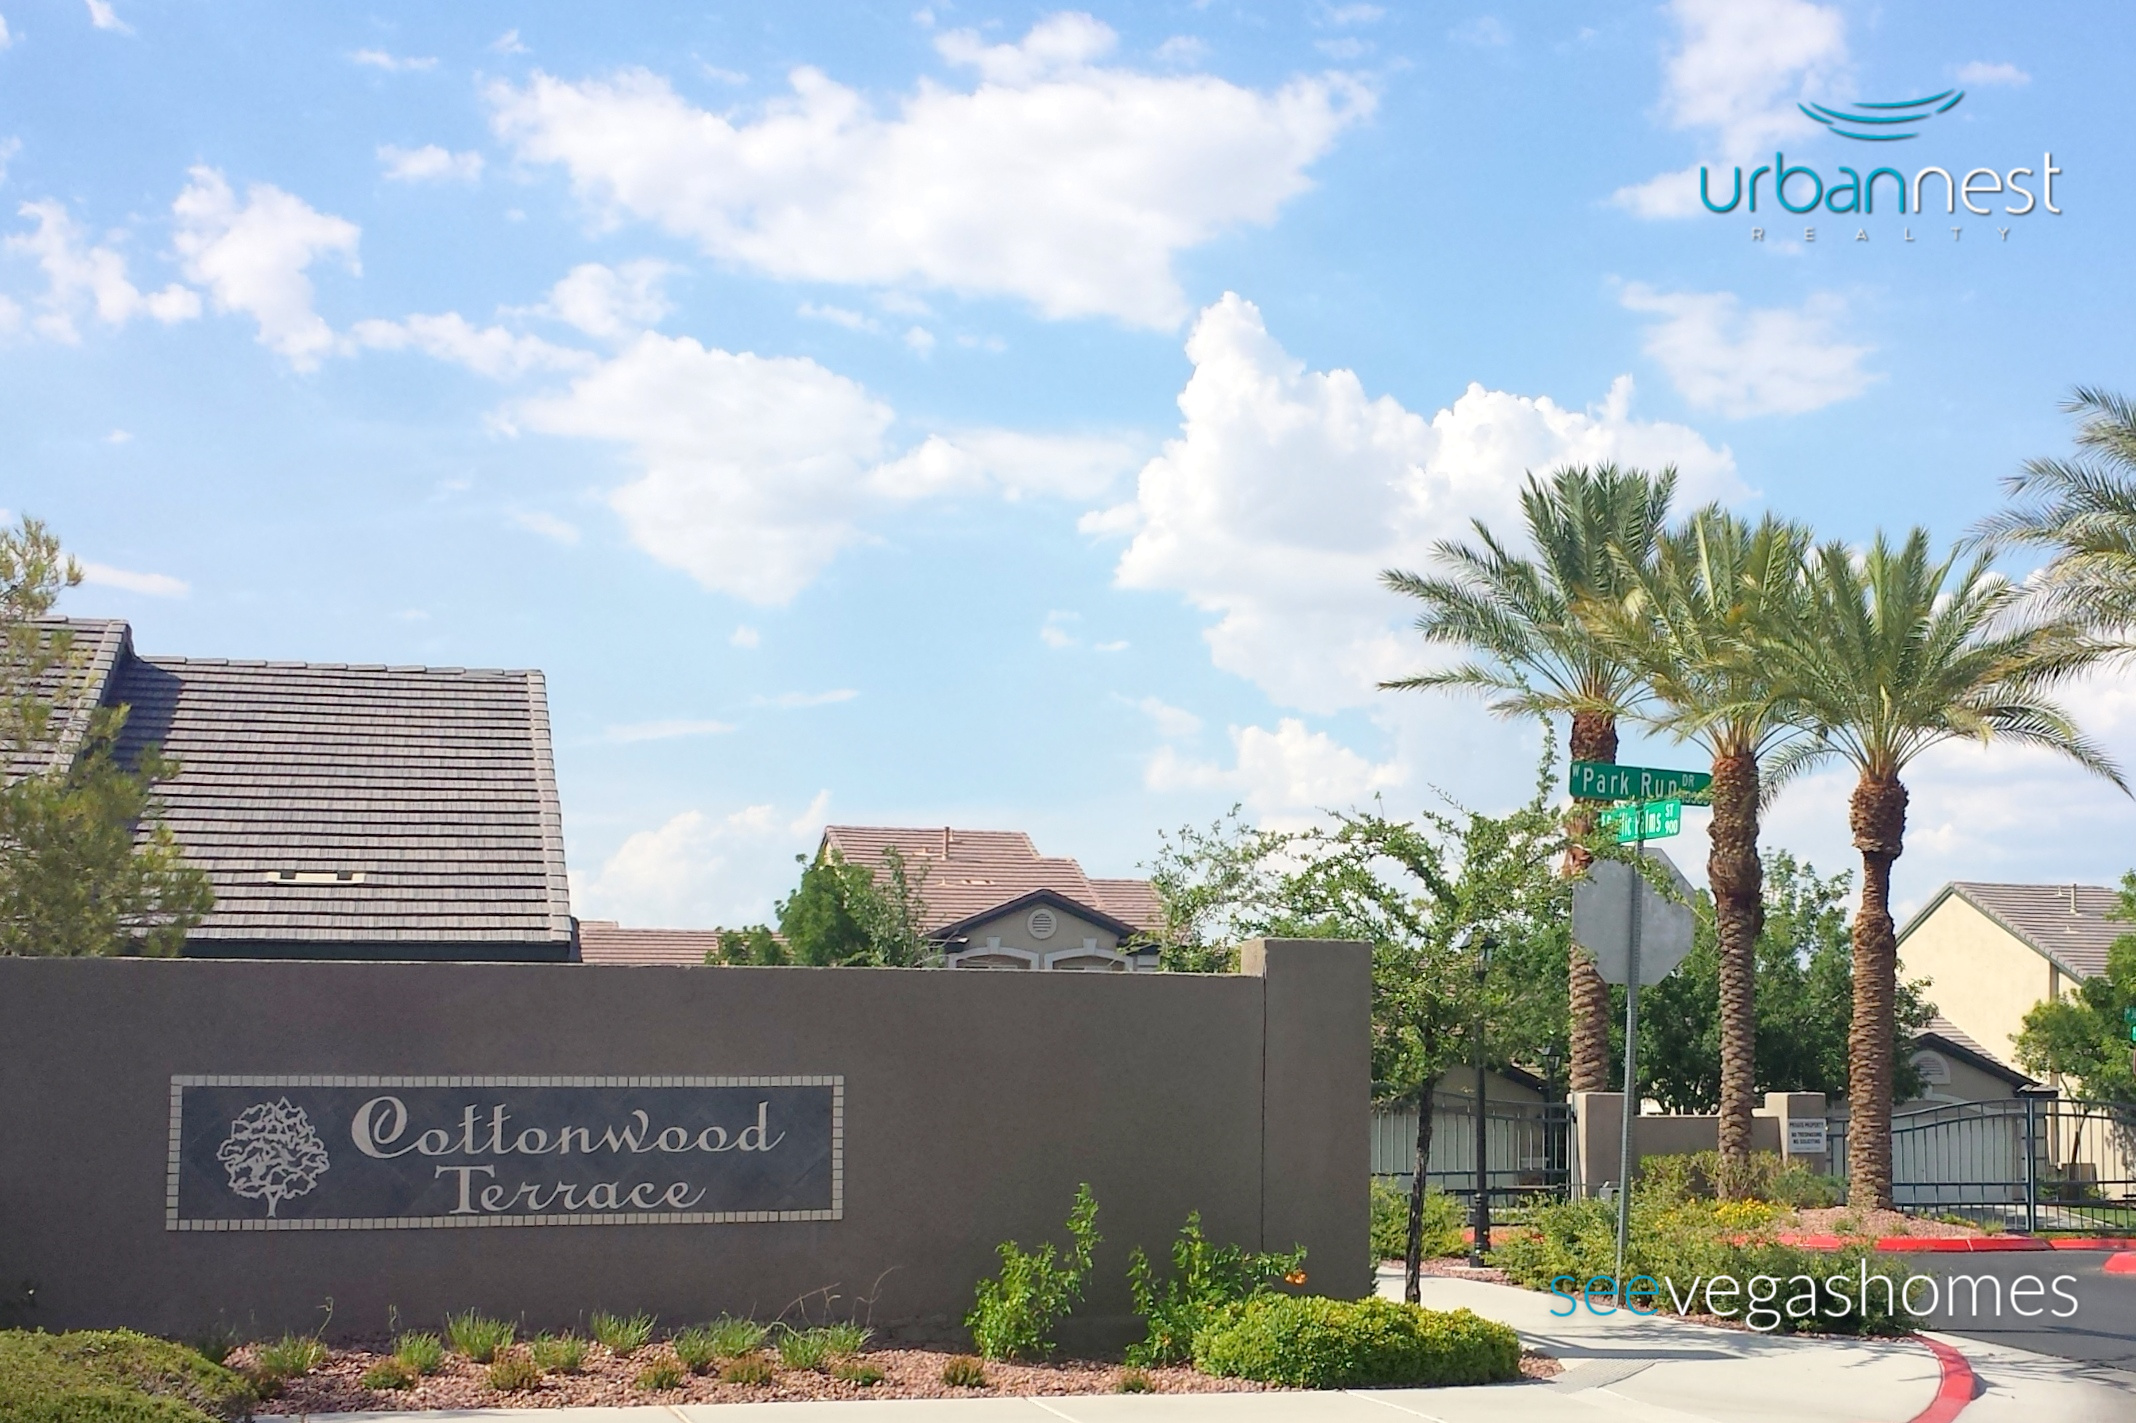 Cottonwood Terrace Townhomes Summerlin Las Vegas 89145 SeeVegasHomes